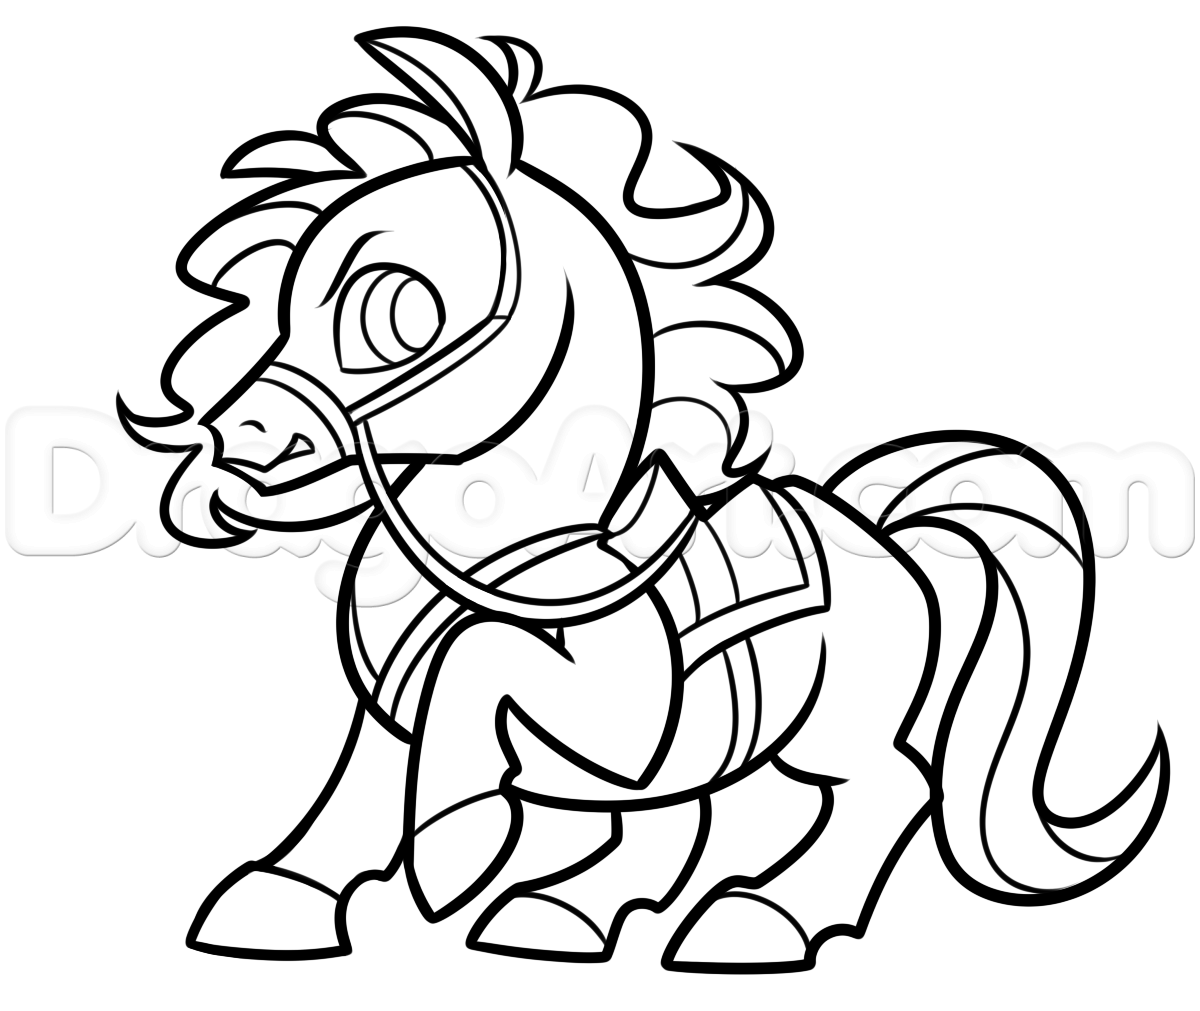 draw maximus from tangled chibi style step by step chibis draw